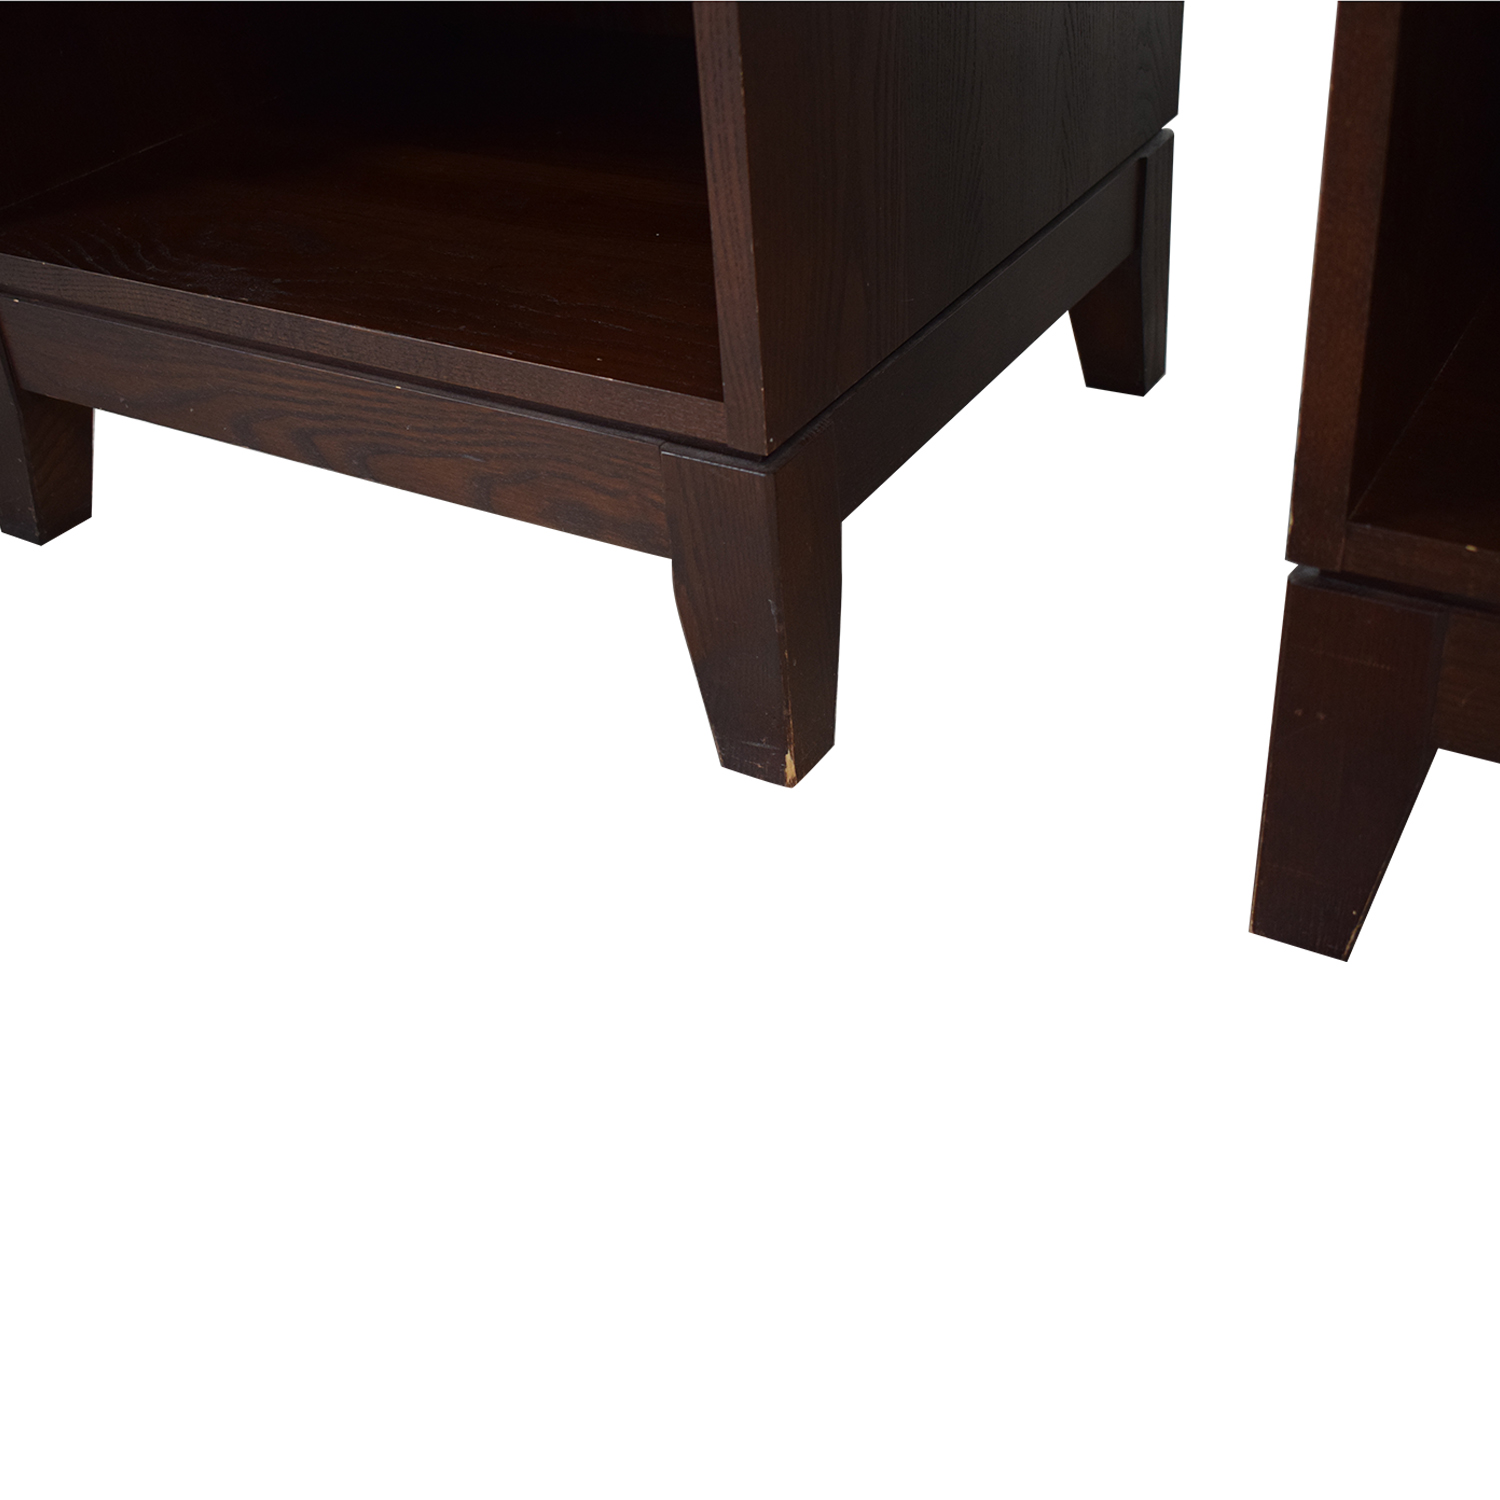 Vermont Tubbs Vermont Tubbs Single Drawer Nightstands coupon